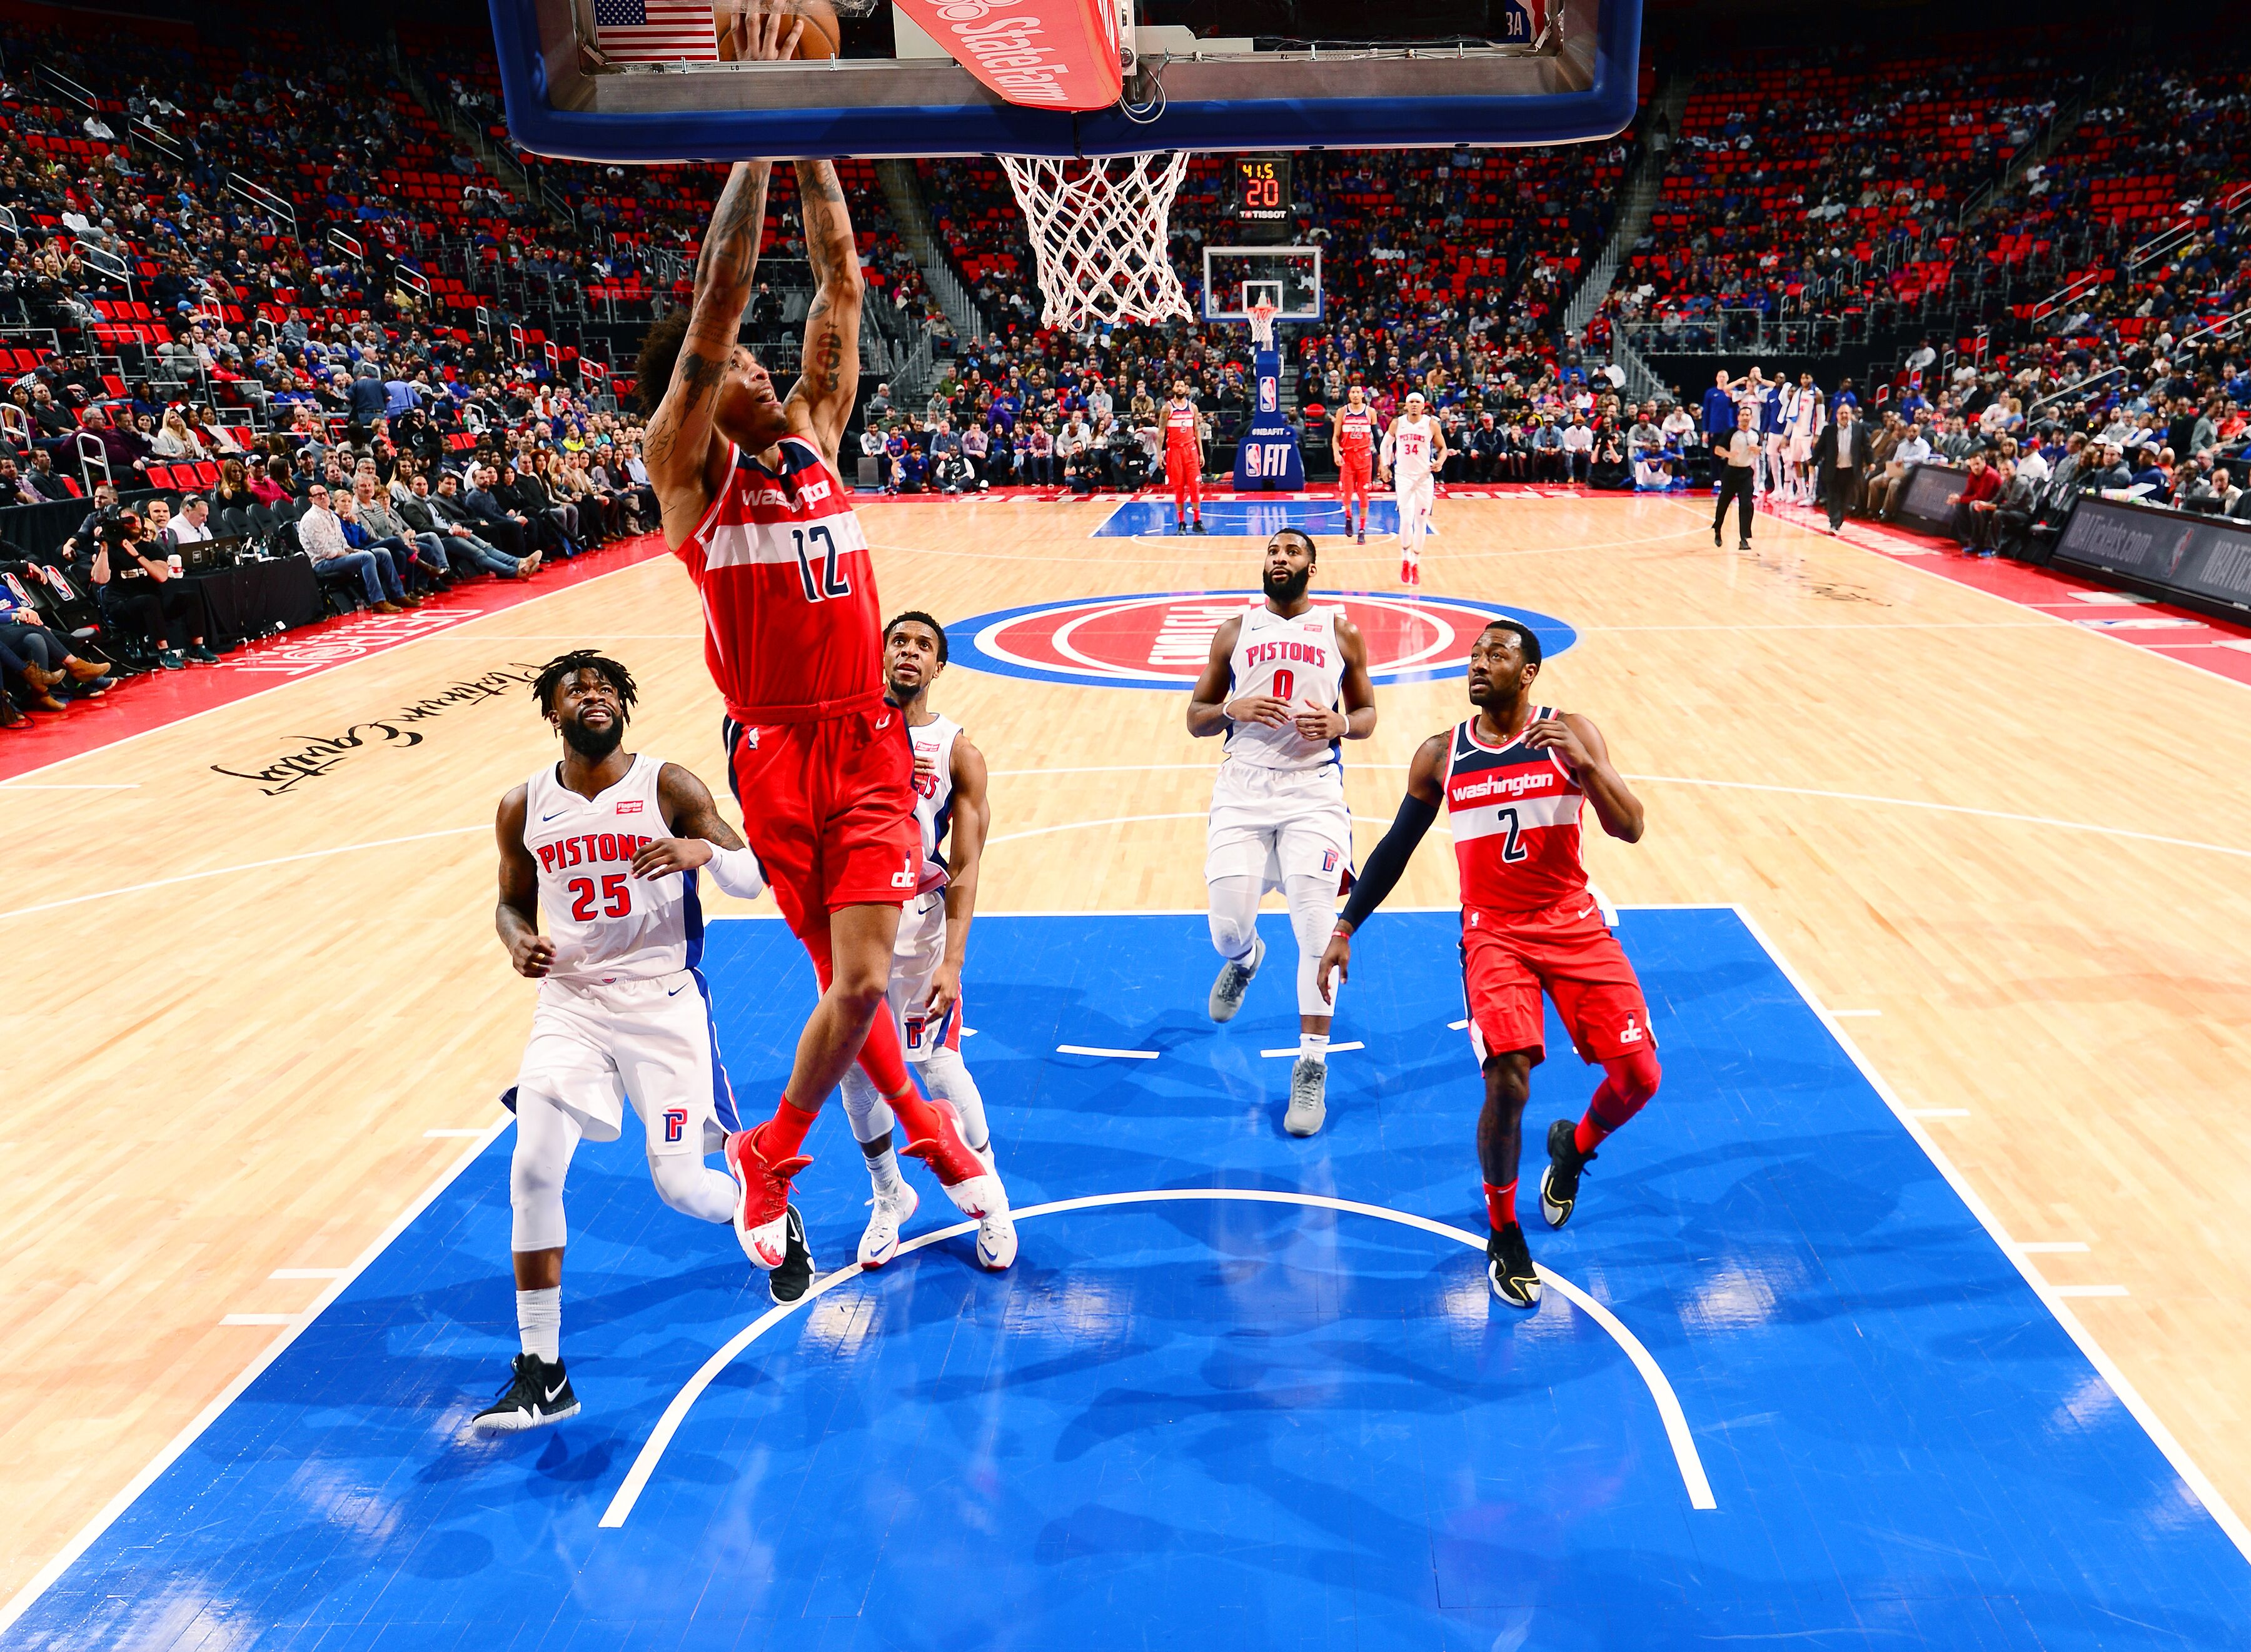 907307690-washington-wizards-v-detroit-pistons.jpg